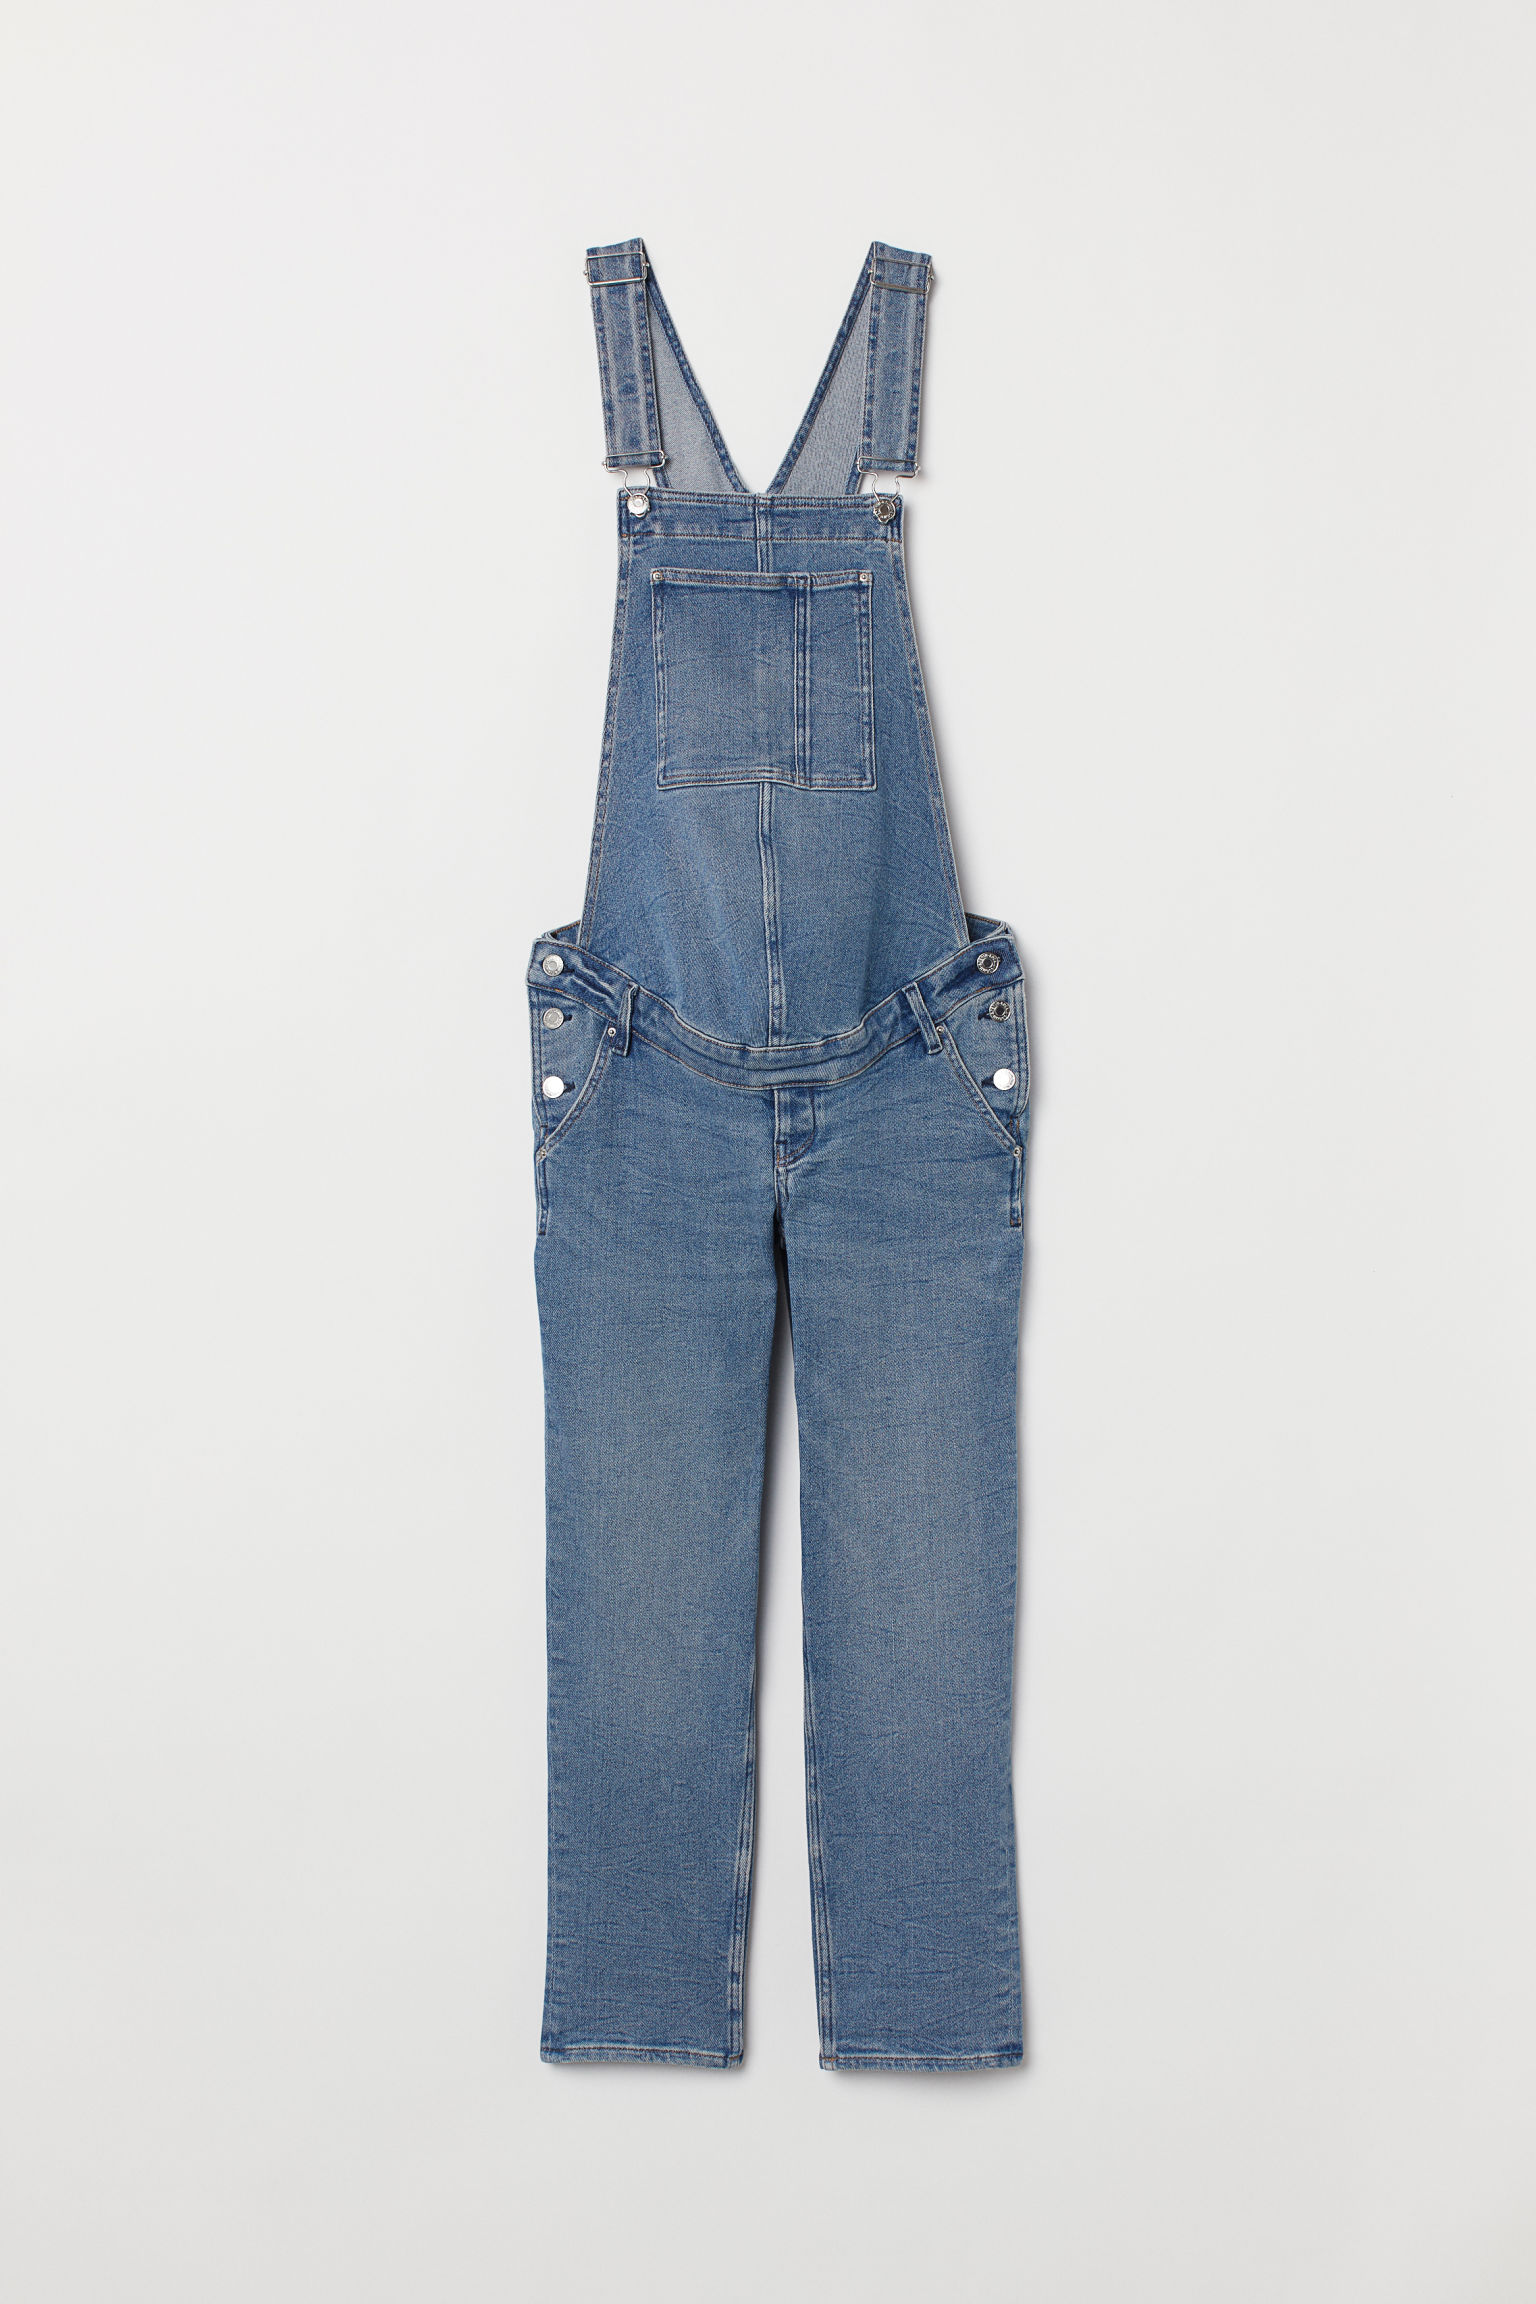 1694e30f9eb17 MAMA Denim Bib Overalls - Denim blue - Ladies